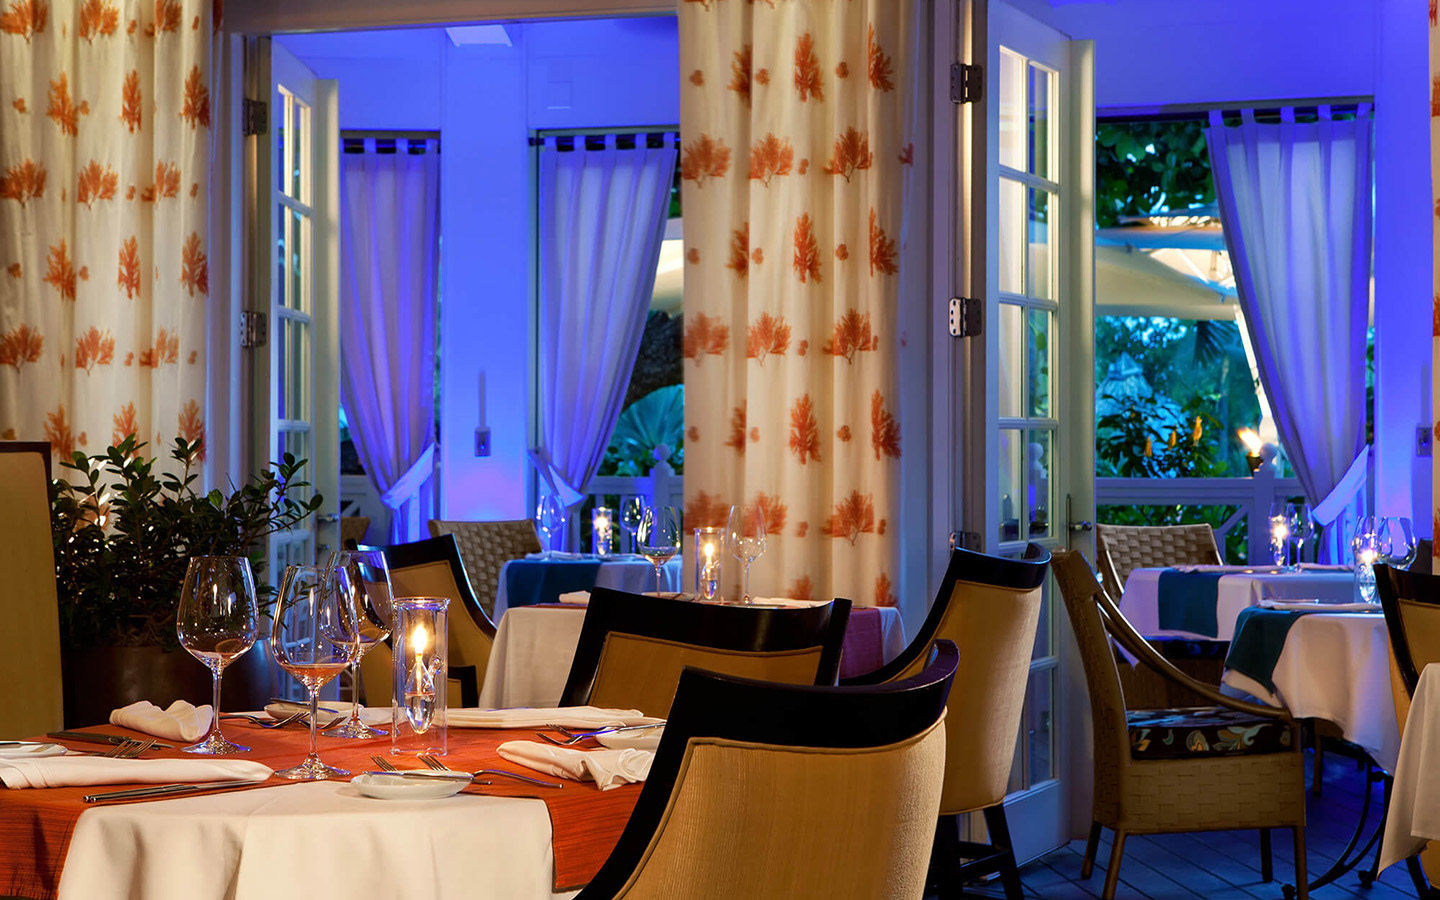 Indoor Dining at Essensia Restaurant